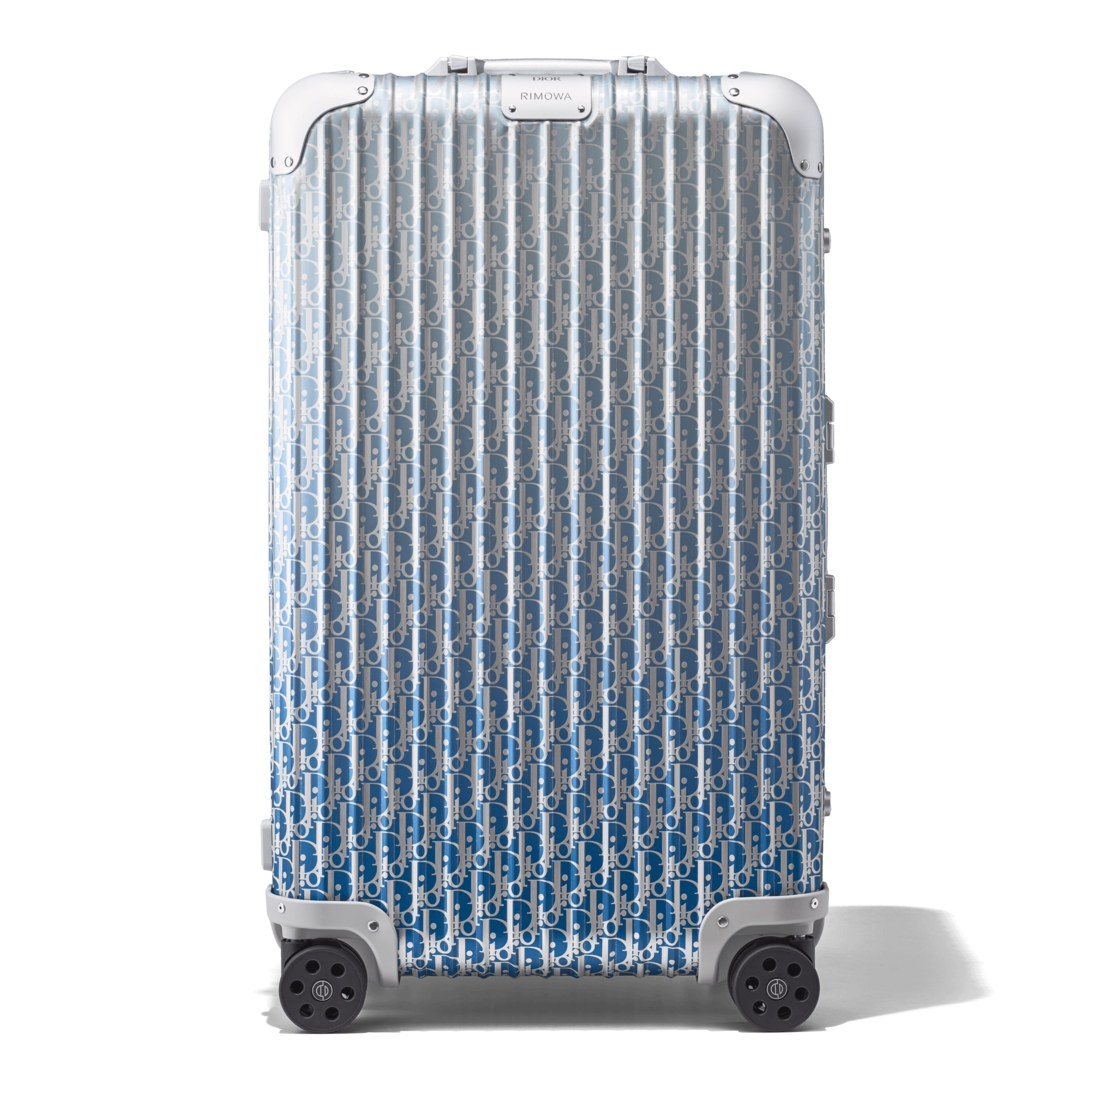 Trunk - DIOR and RIMOWA